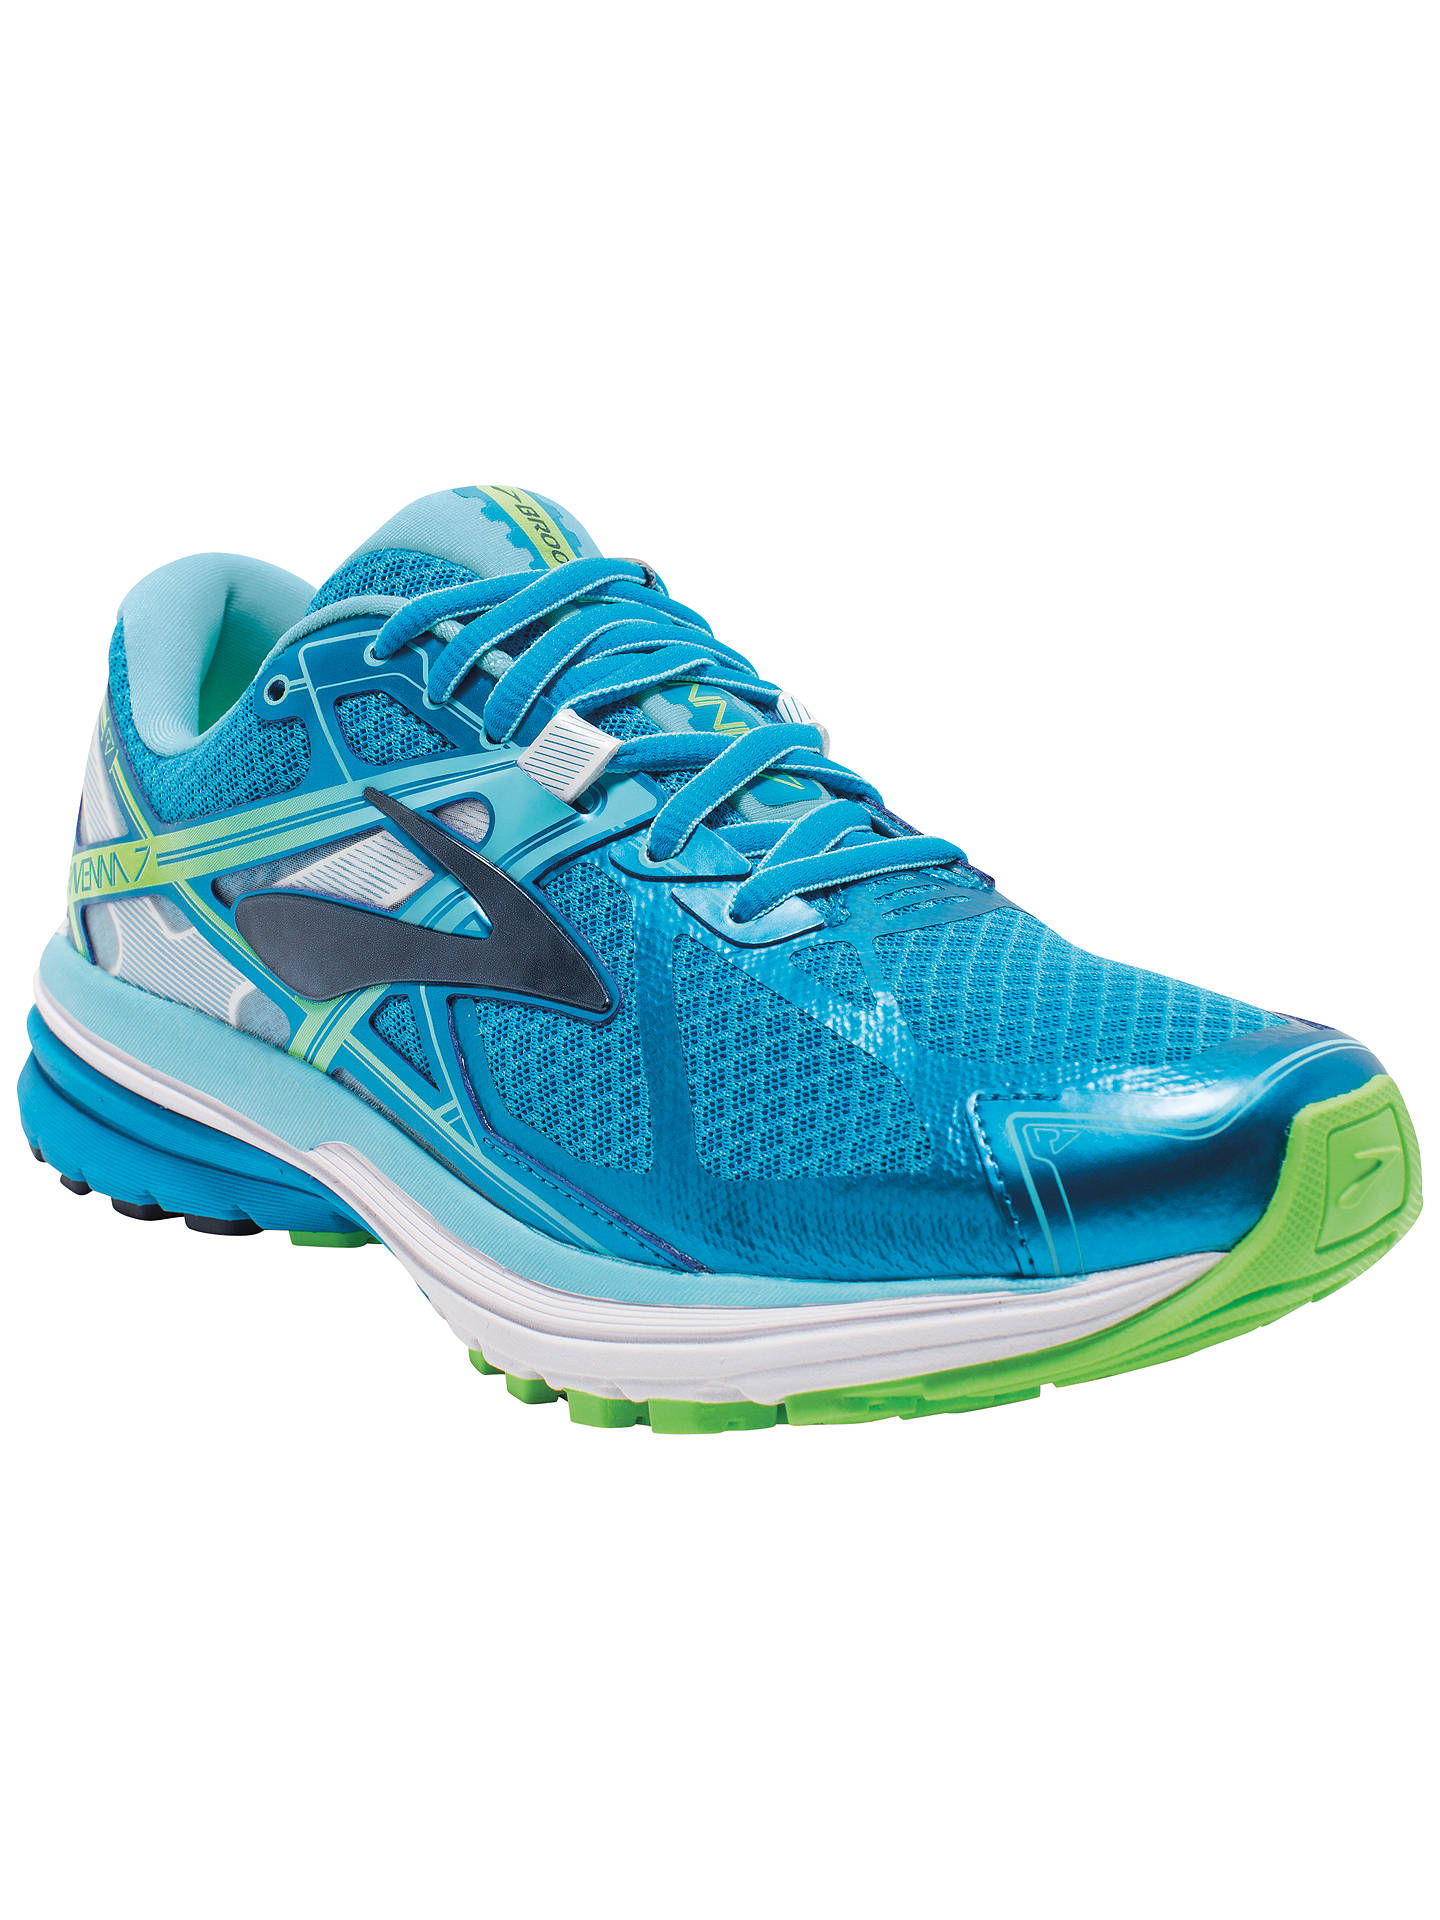 e86a3bba0fcc9 Buy Brooks Ravenna 7 Women s Running Shoes